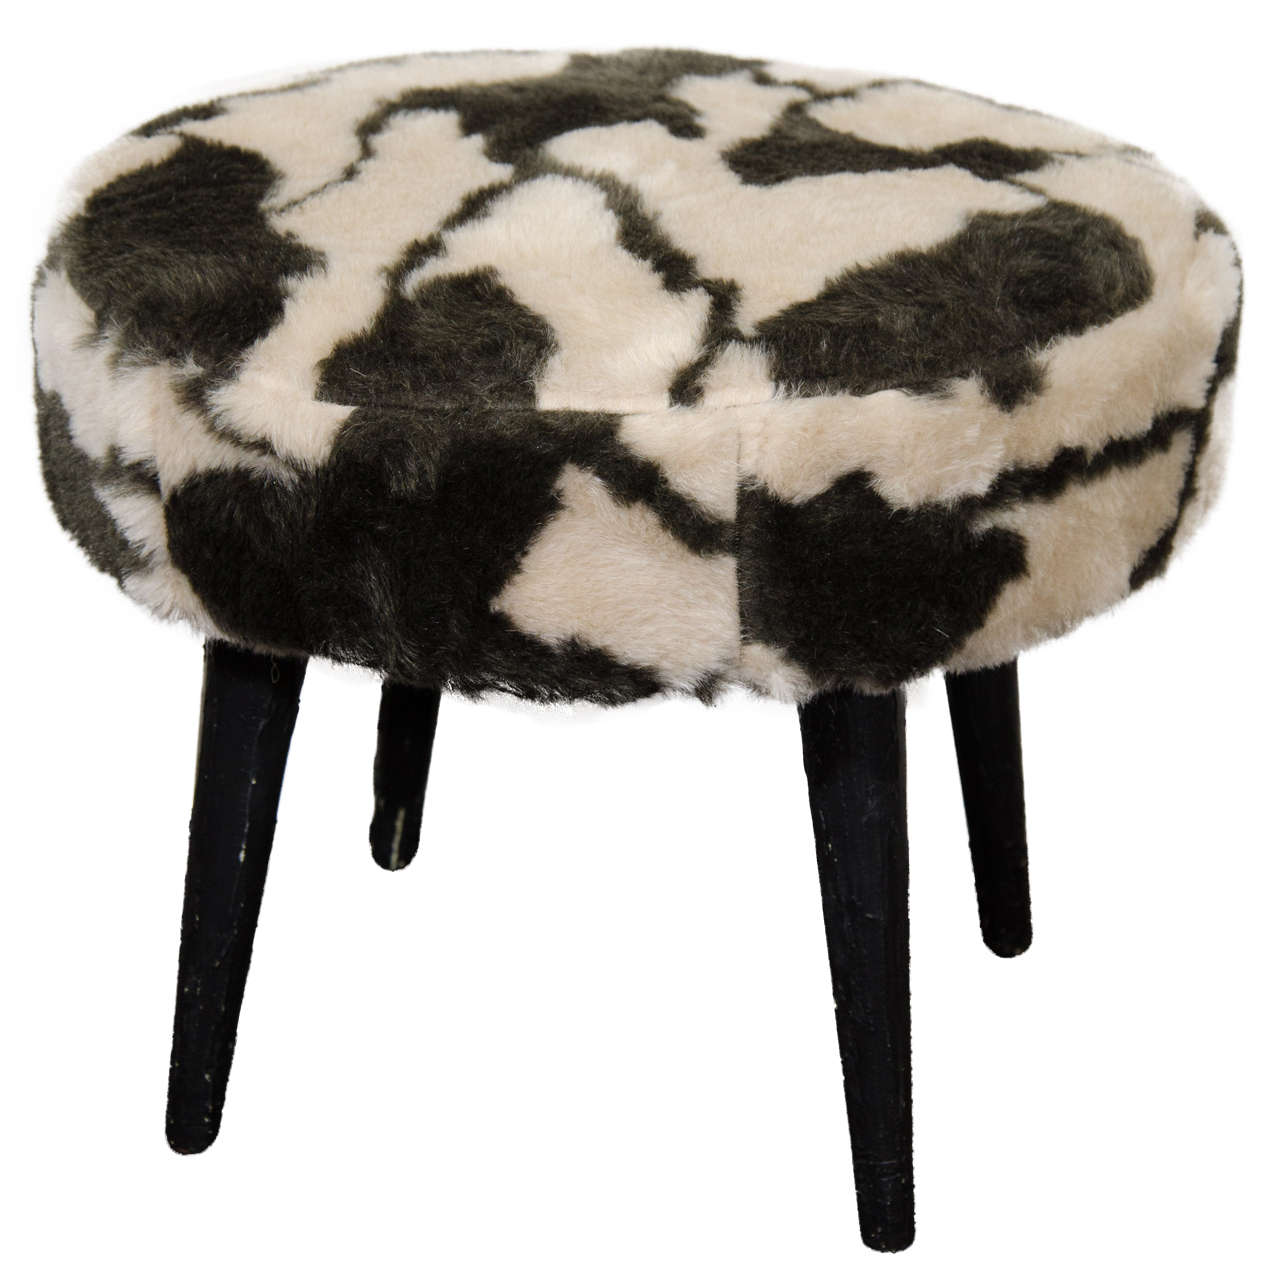 Midcentury Drum Style Bench Or Stool With Animal Print At